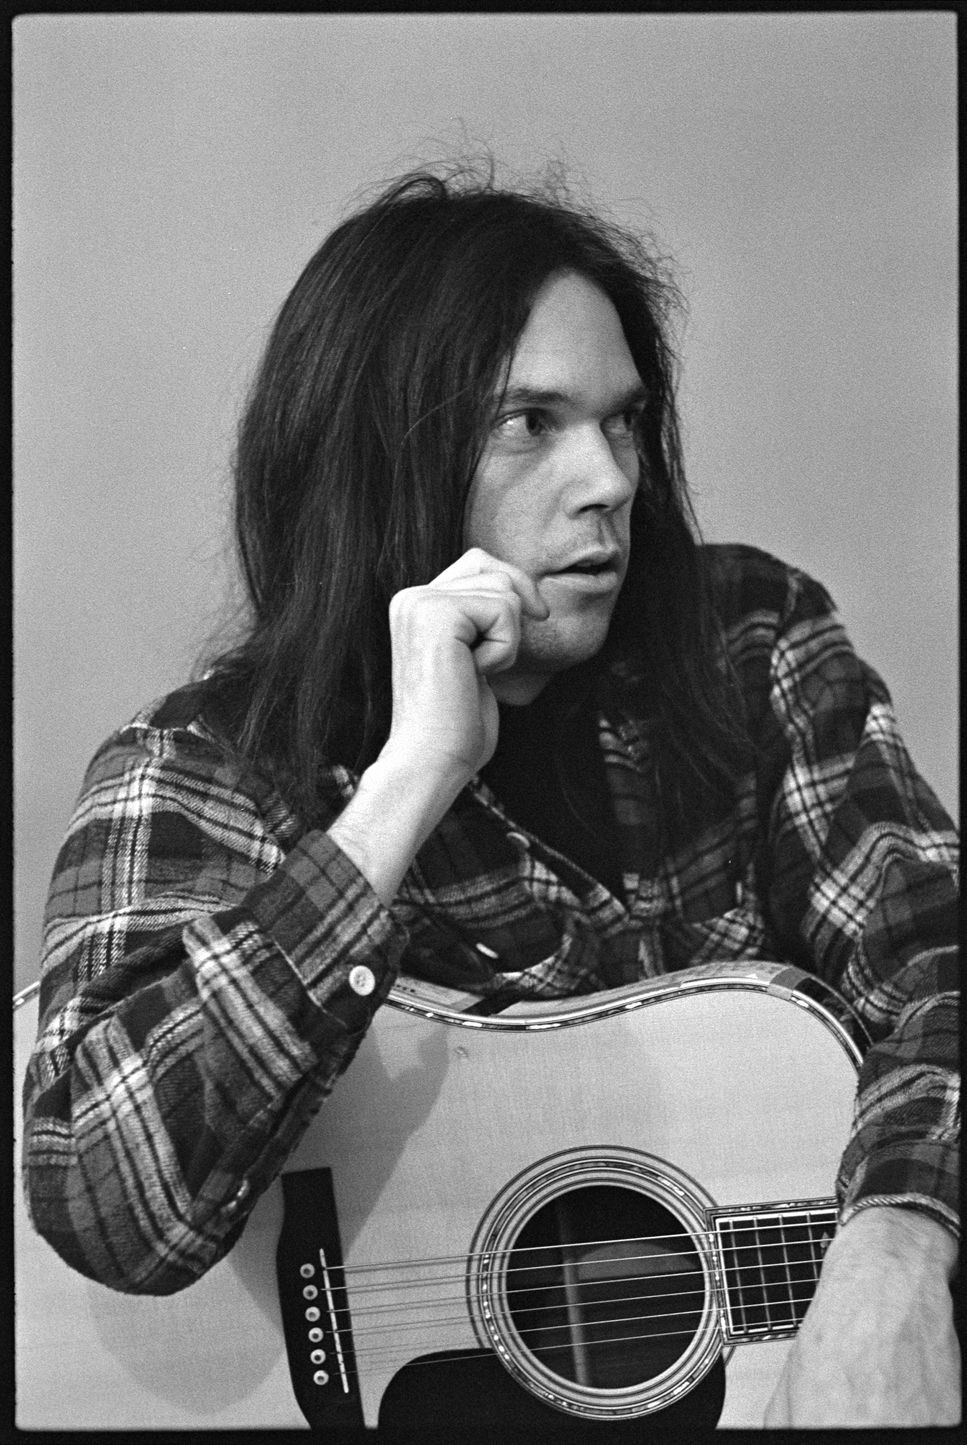 neil young wikineil young dead man, neil young heart of gold, neil young old man, neil young harvest, neil young peace trail, neil young dead man tab, neil young harvest moon, neil young heart of gold chords, neil young old man lyrics, neil young & crazy horse, neil young слушать, neil young harvest moon перевод, neil young dead man chords, neil young on the beach, neil young ohio, neil young wiki, neil young heart of gold скачать, neil young discography, neil young old man tab, neil young скачать